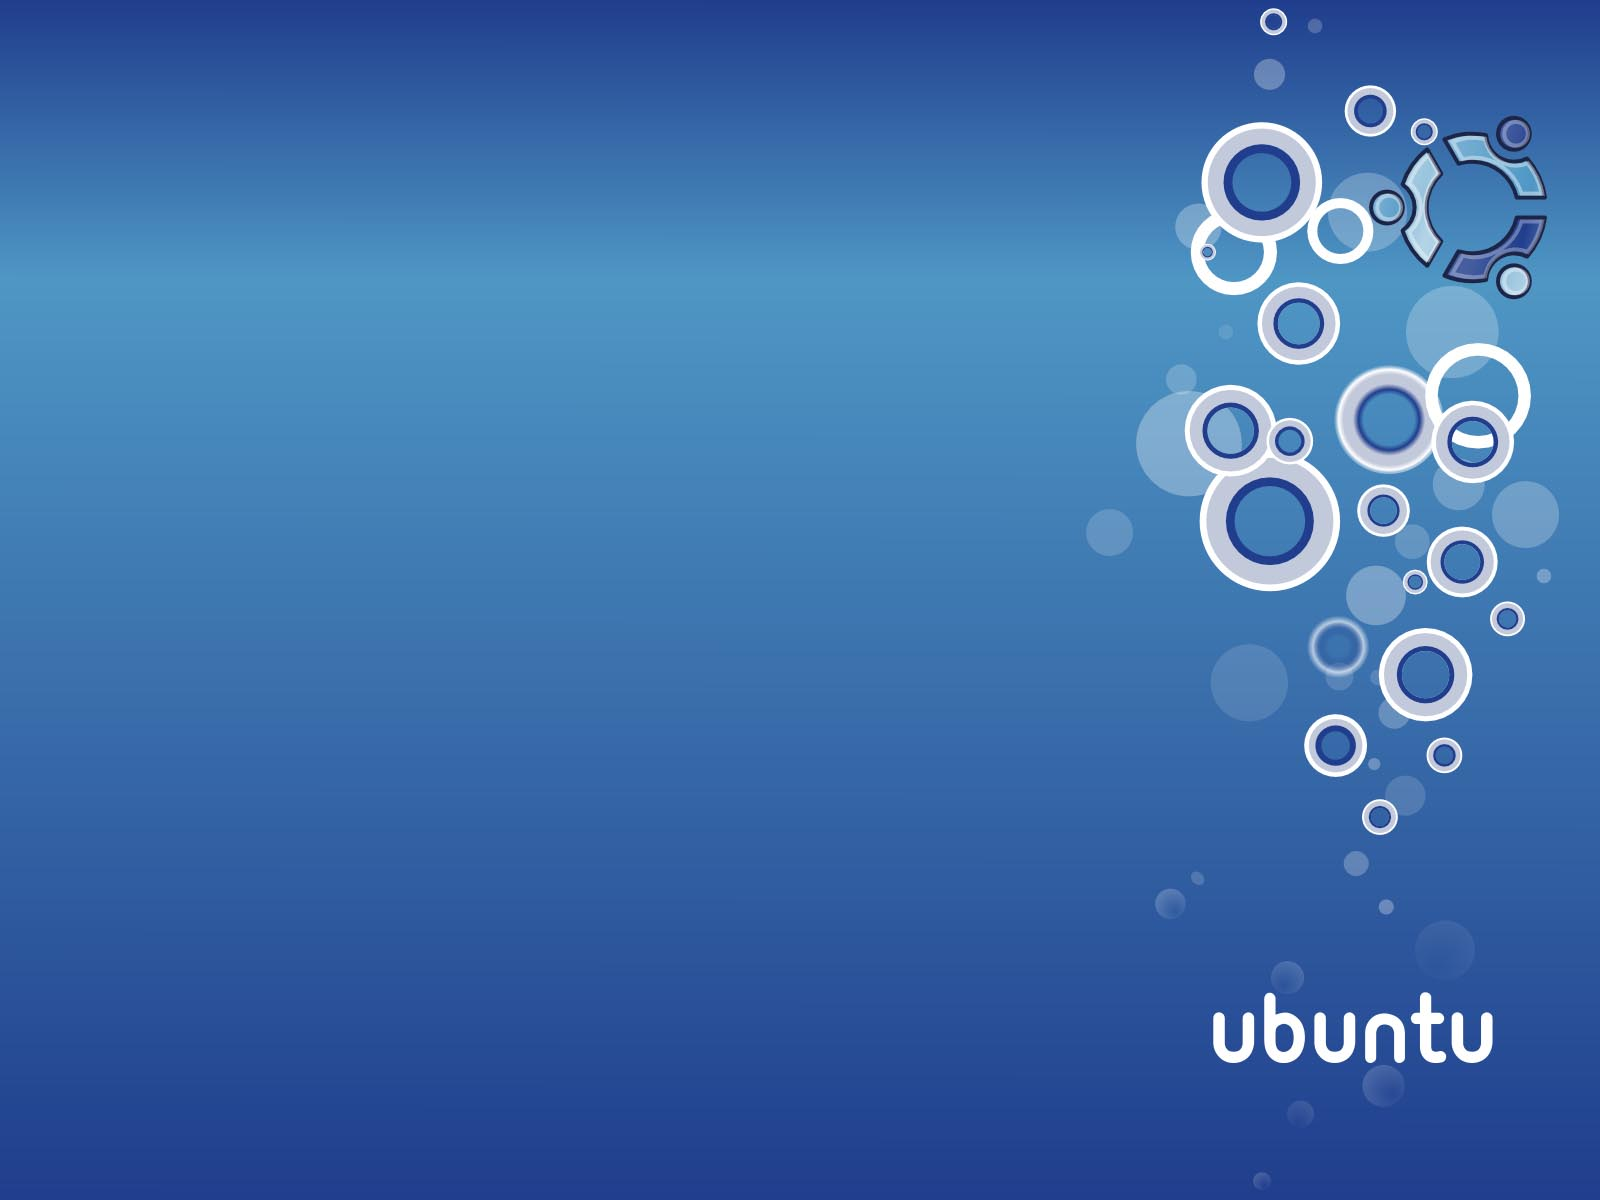 Ubuntu Wallpapers Blue wallpaper Ubuntu Wallpapers Blue hd wallpaper 1600x1200